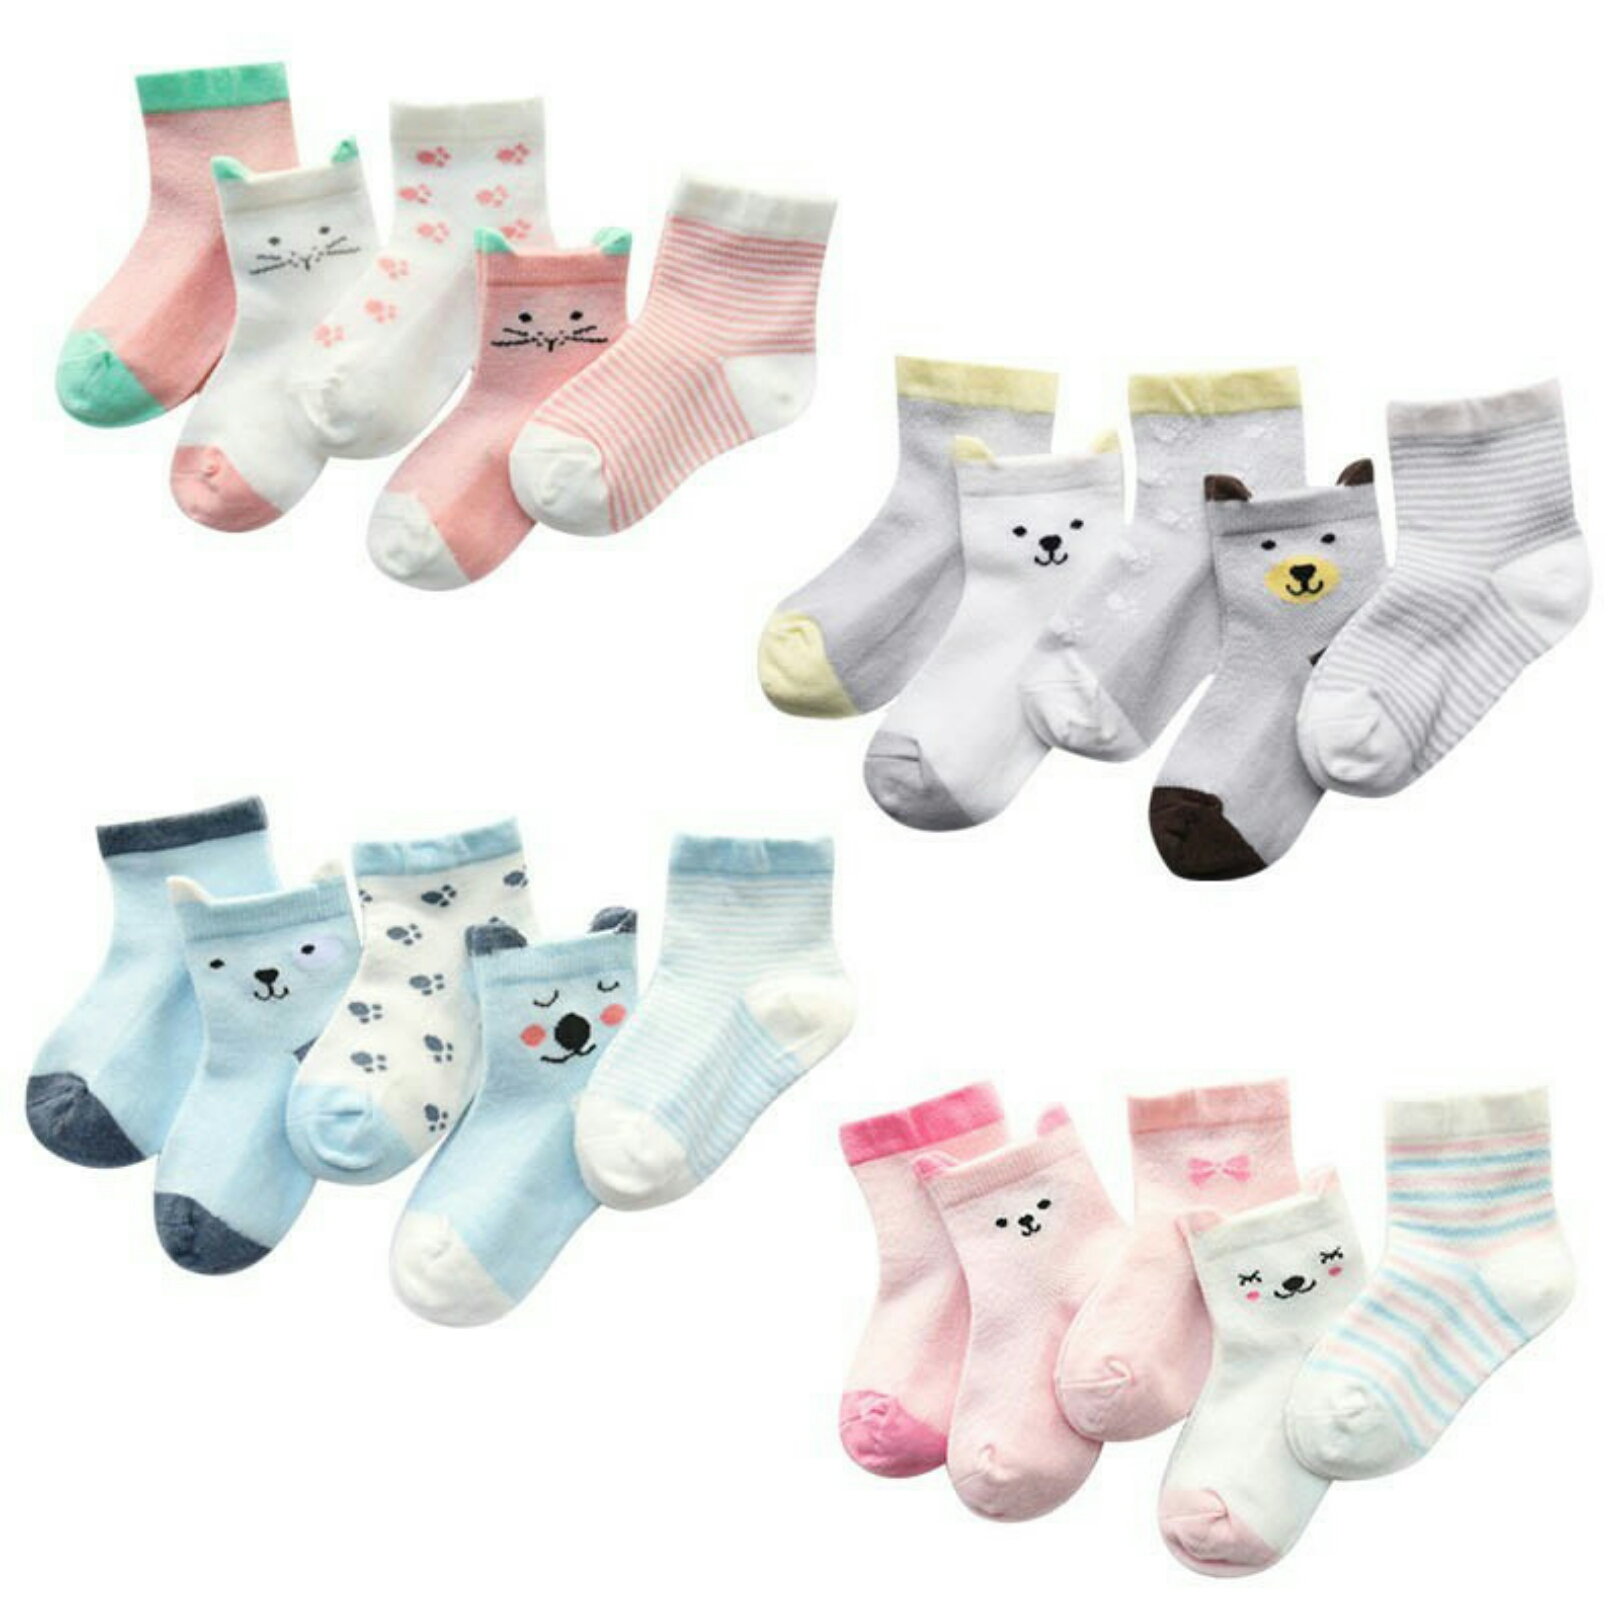 5 Pairs/lot Baby Boy Socks Newborn Toddler Swan Cotton Mesh Sock Cute Infant Girl Mesh Sock Baby Clothes Accessories